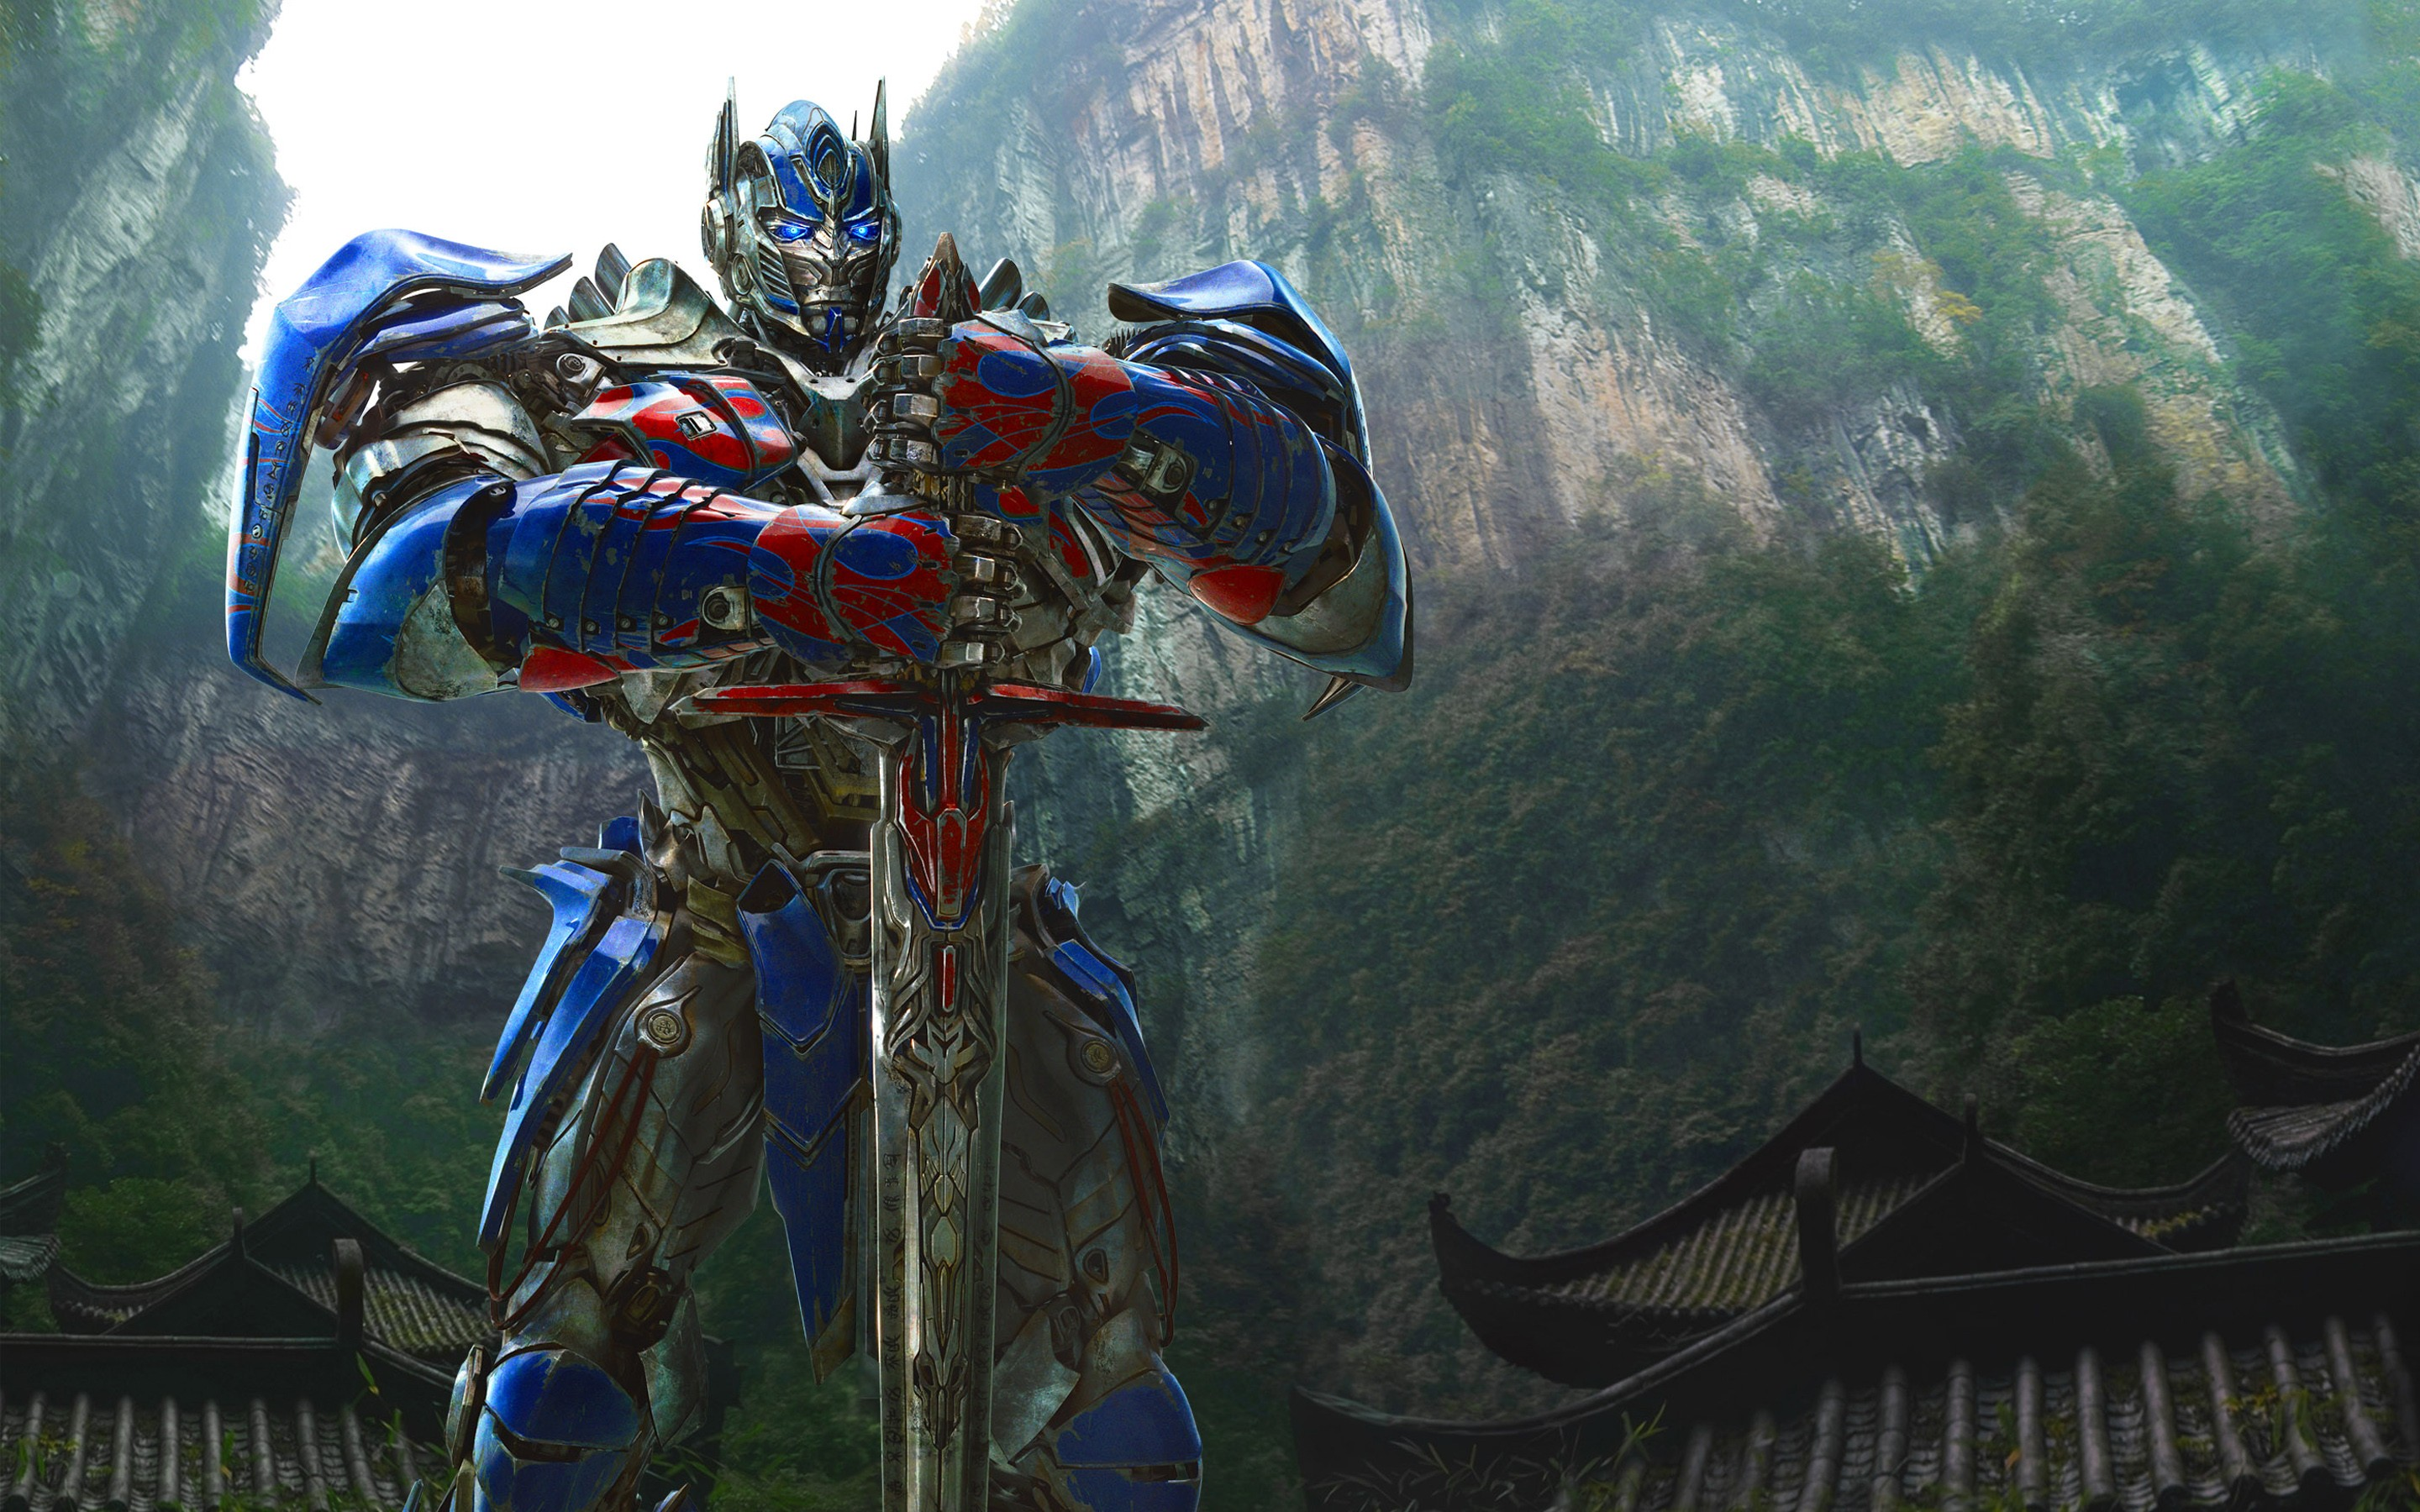 transformers wallpaper ·① download free cool hd backgrounds for